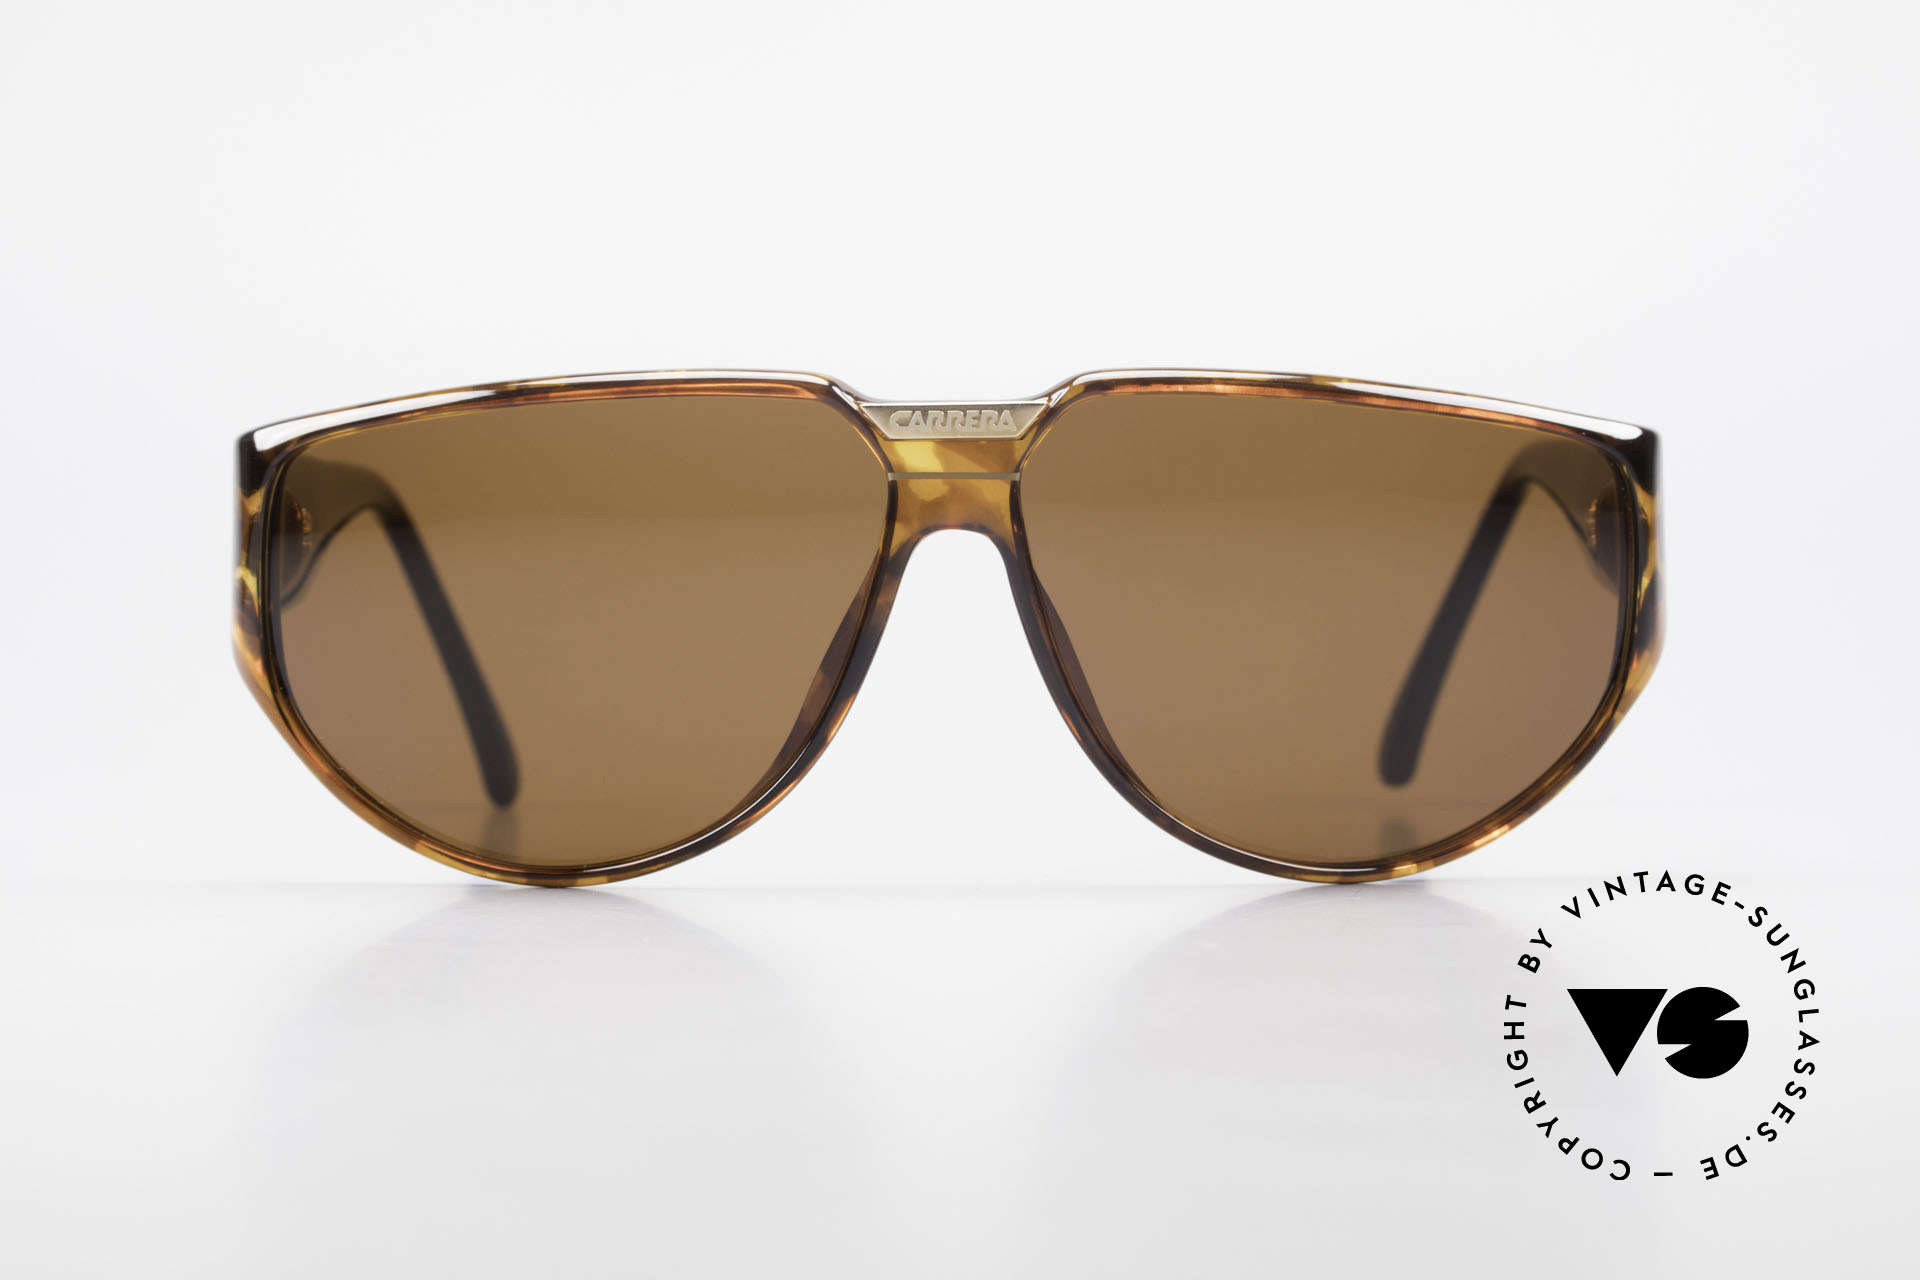 Carrera 5417 Rare 80's Sportsglasses Optyl, original catalog name: model 5417 Admiral, 65/11, Made for Men